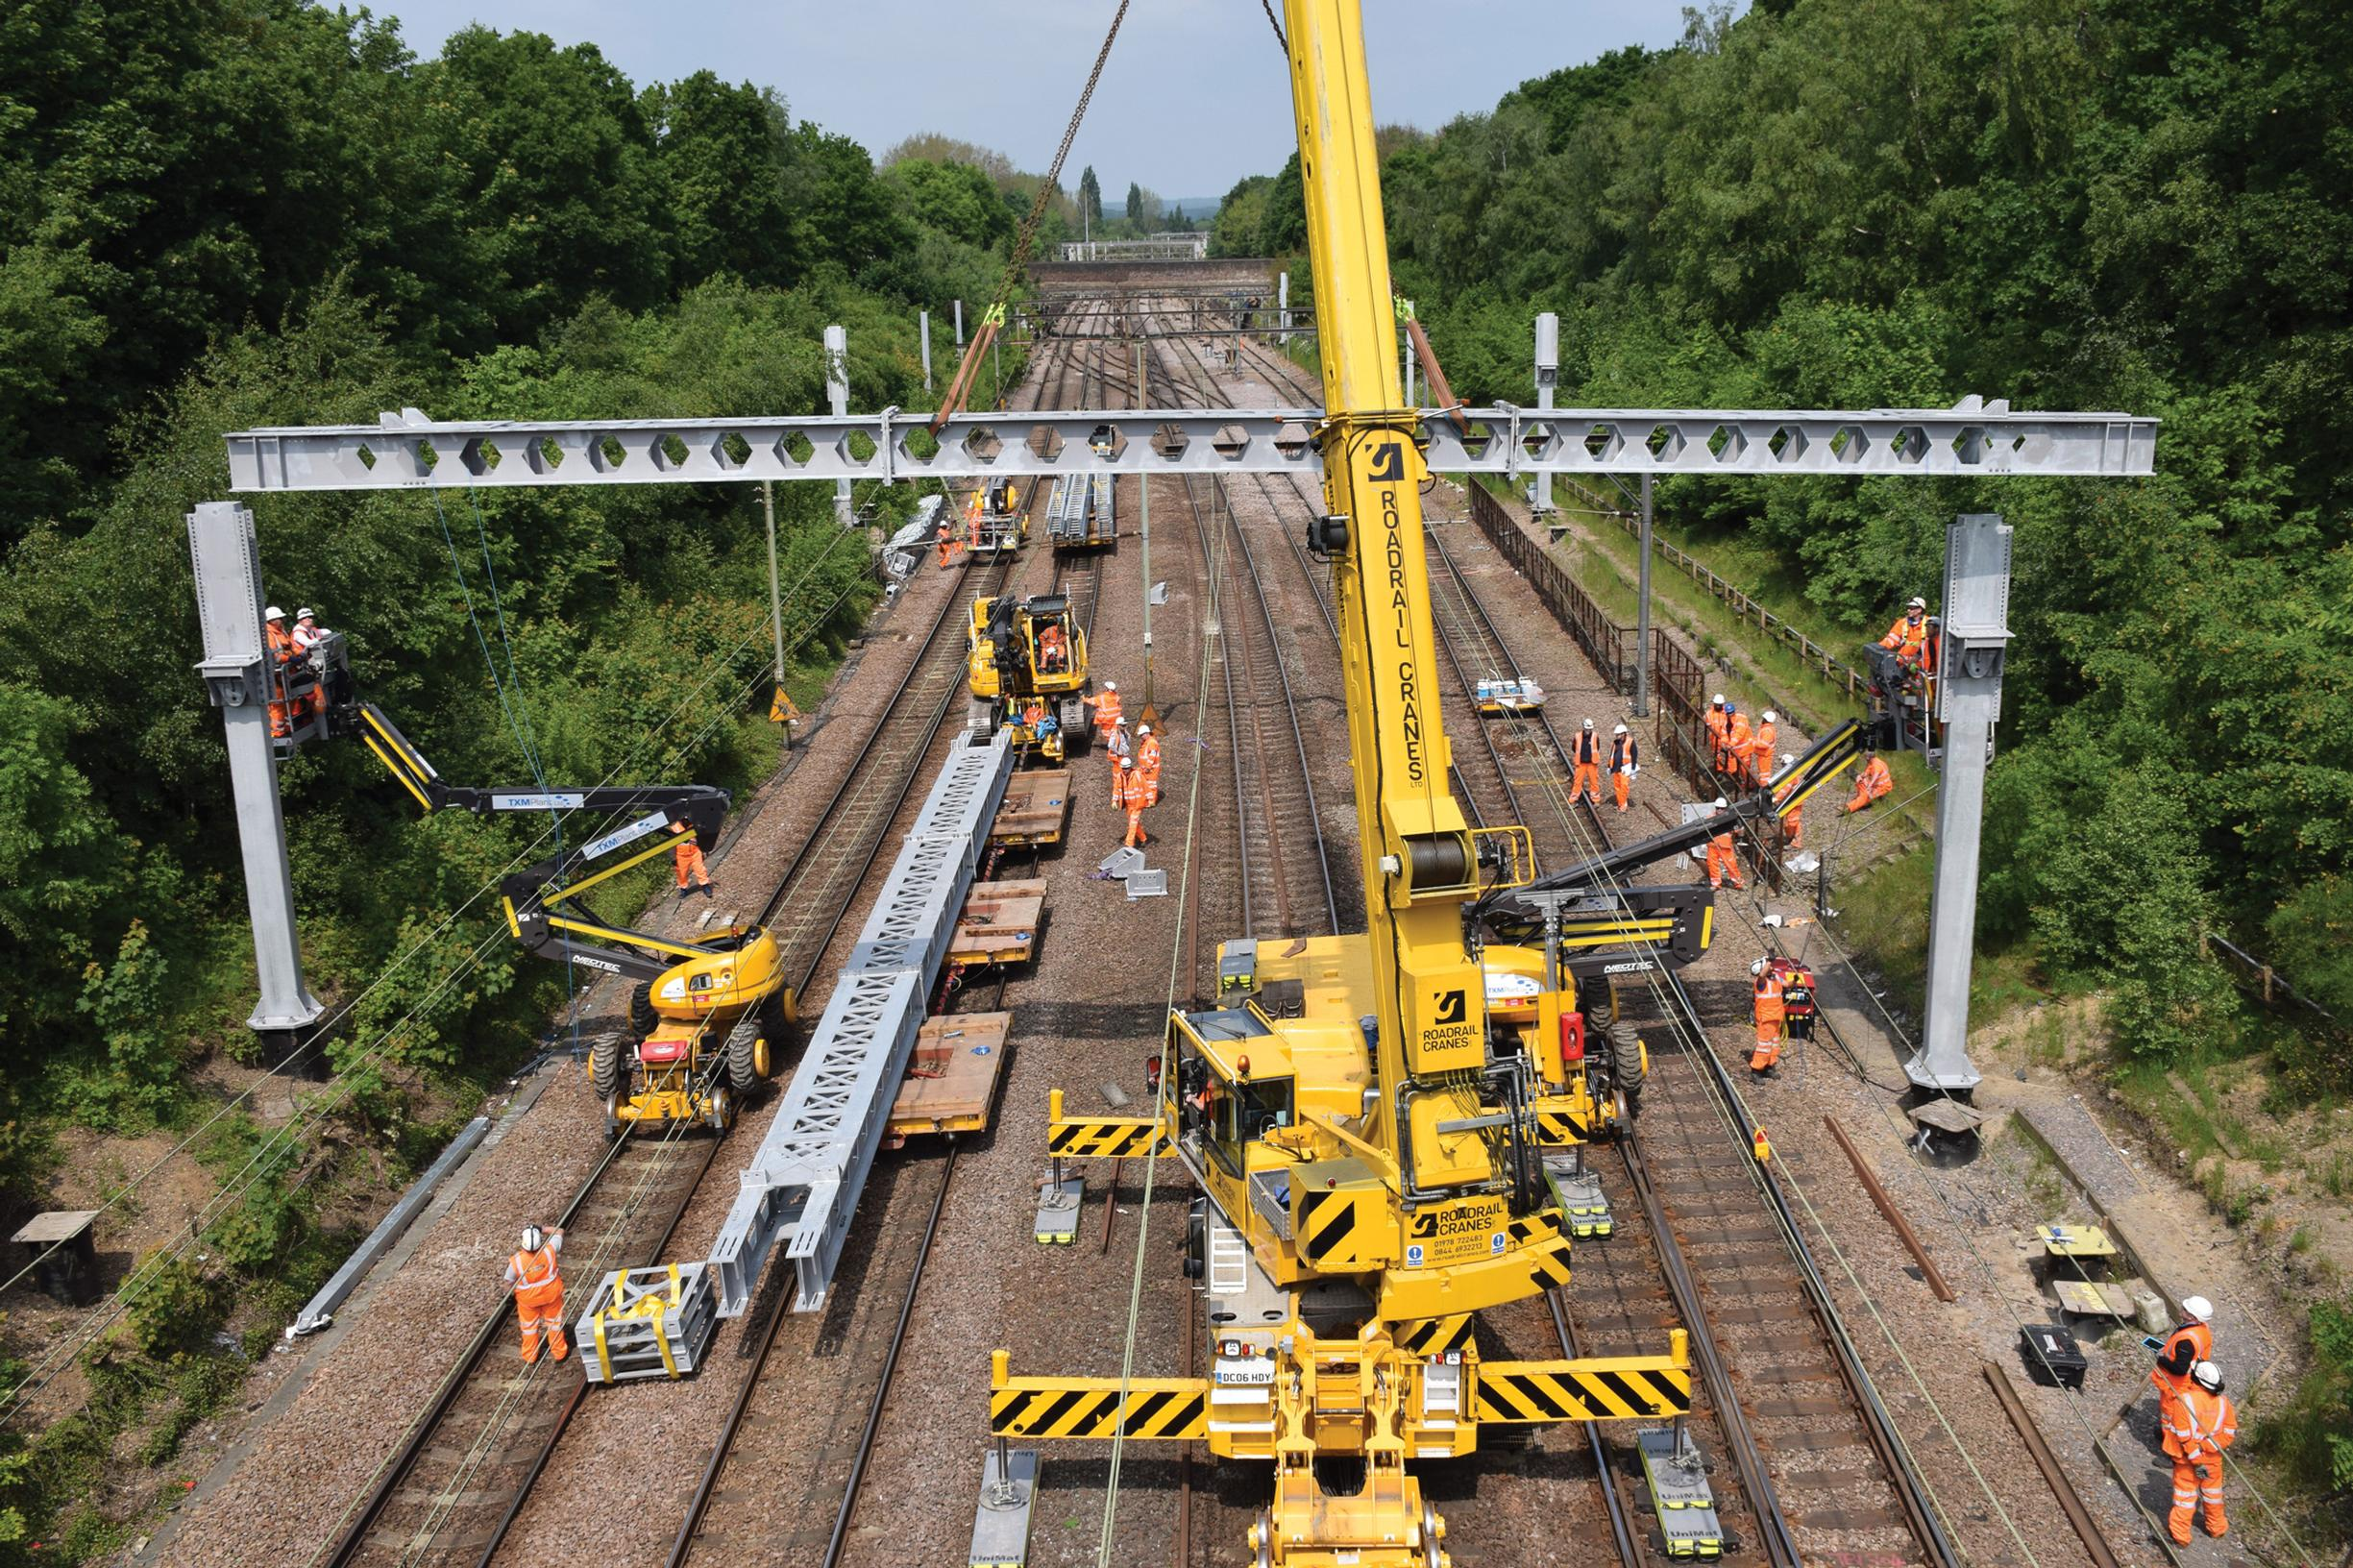 DfT & Scots revise planning process for rail enhancements